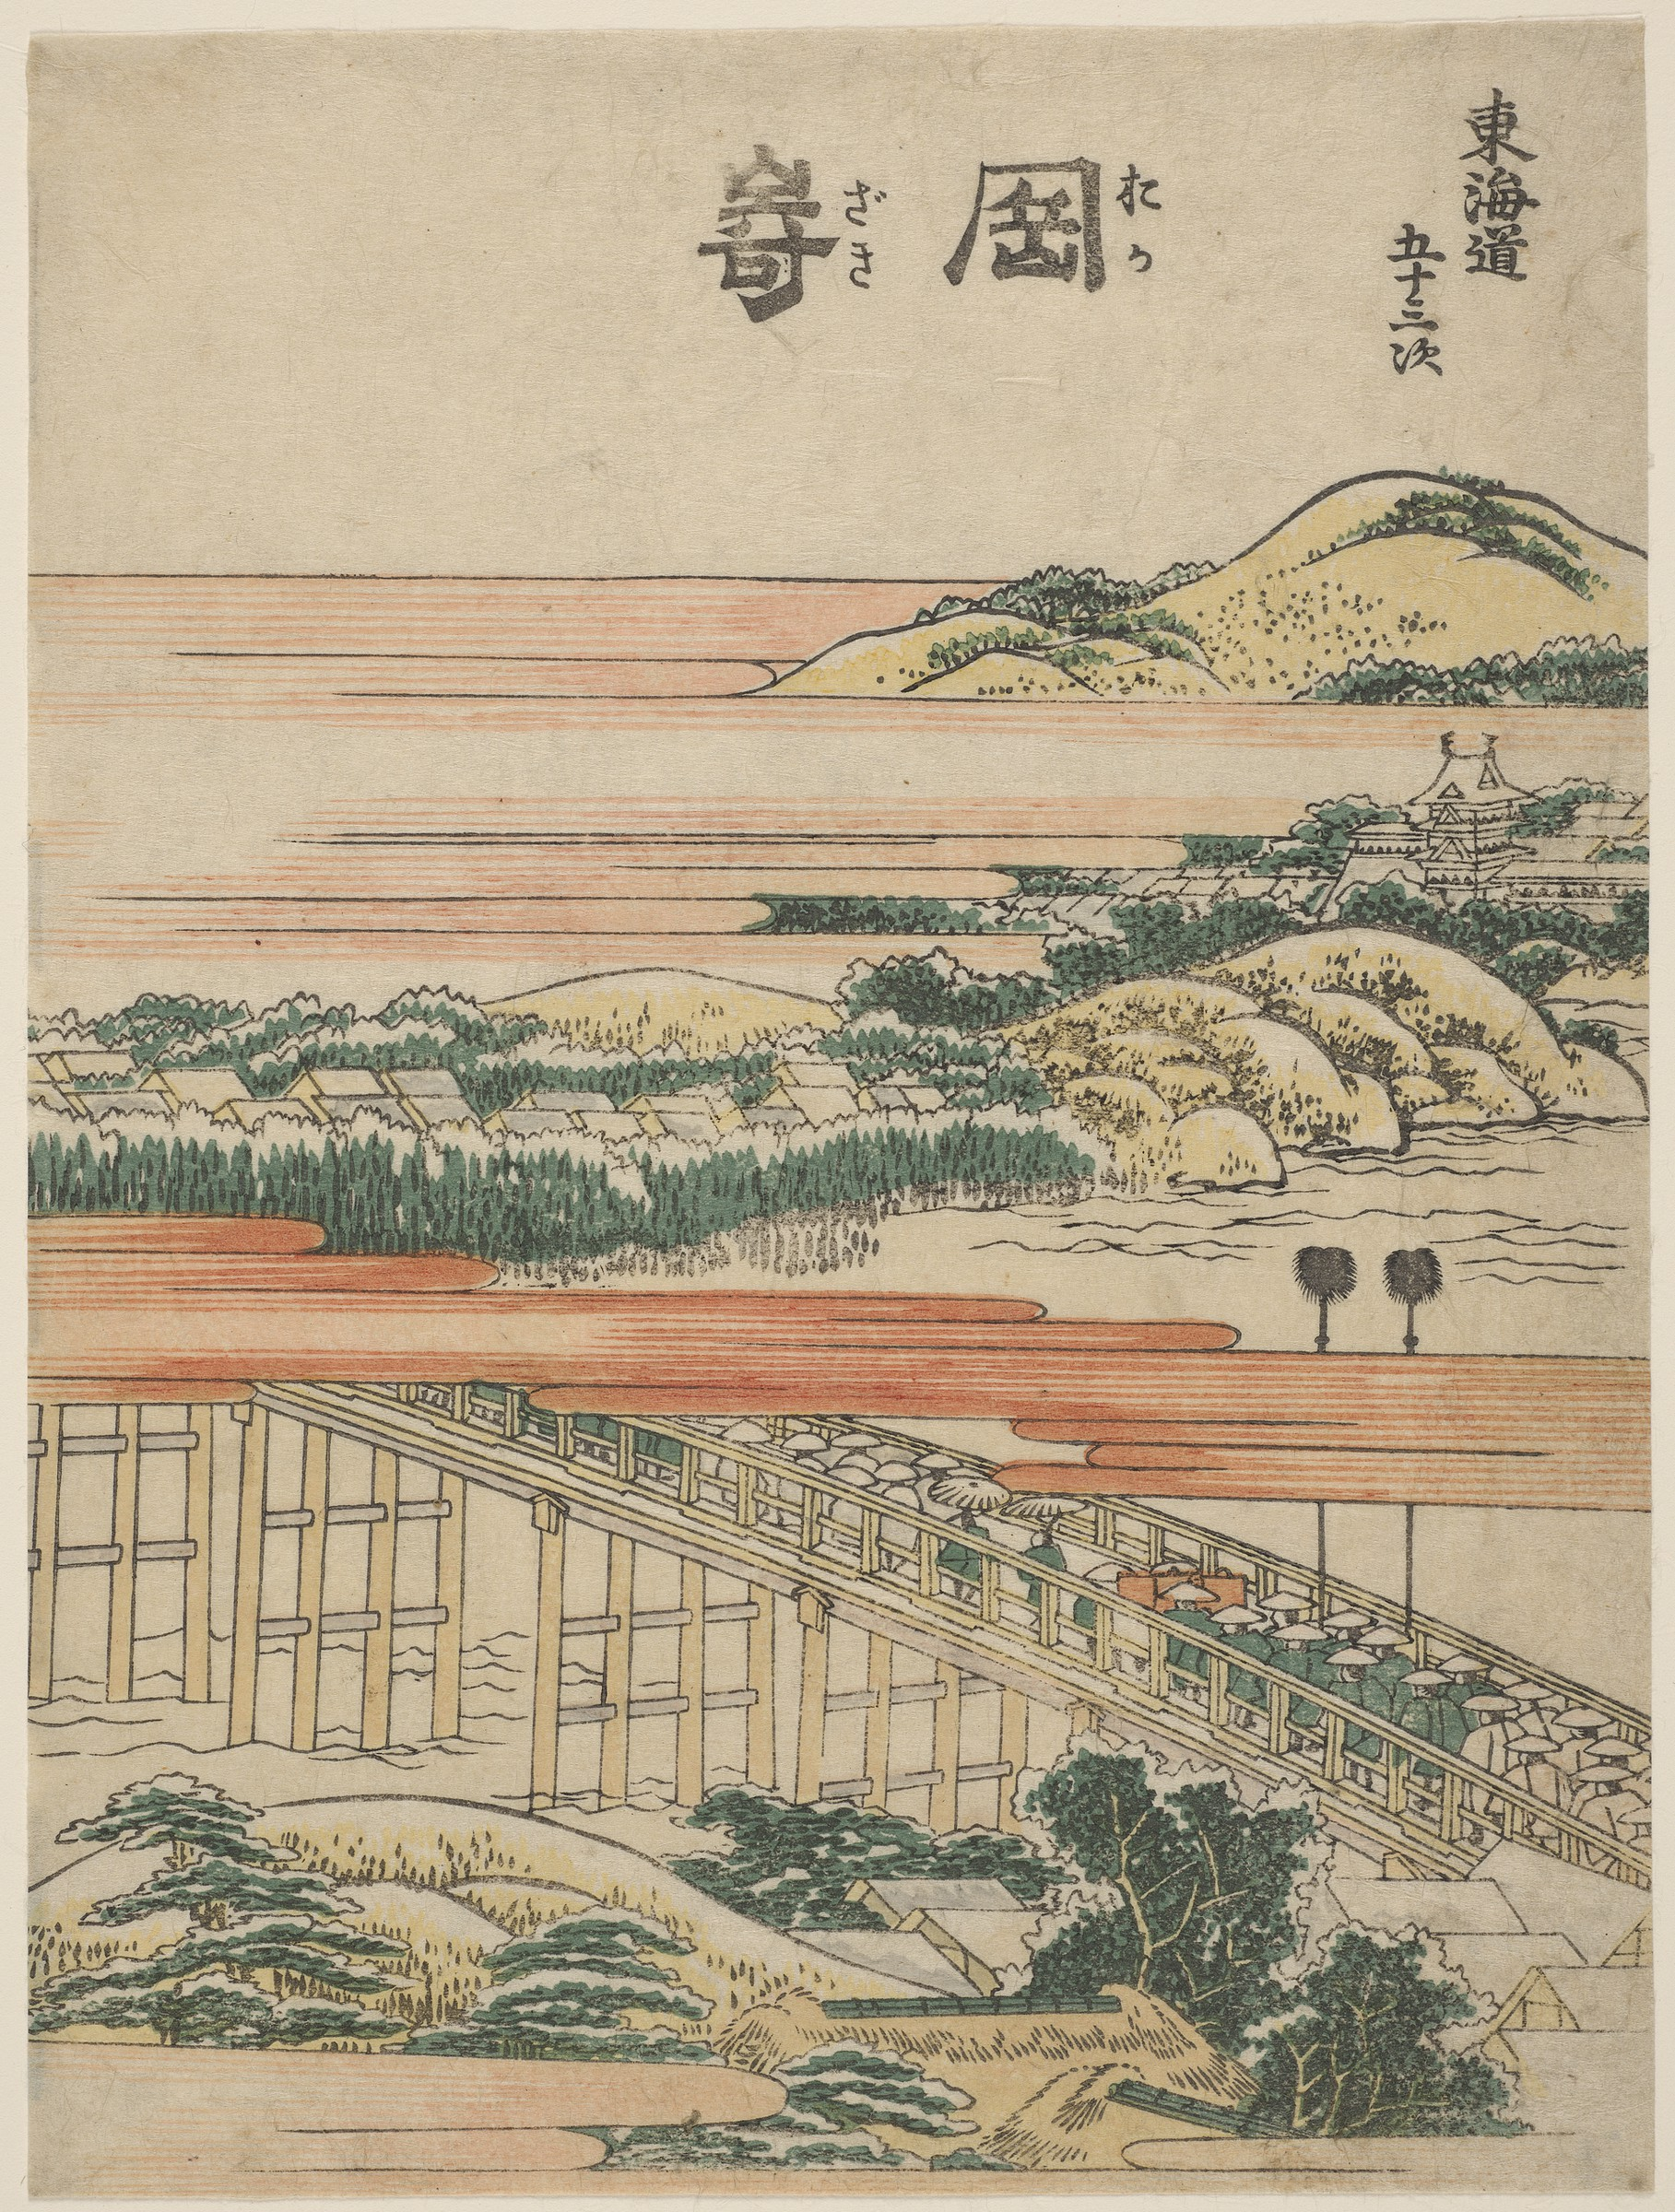 Woodblock print by Katsushika Hokusai of a landscape with mountains, rooftops, and a bridge filled with people.